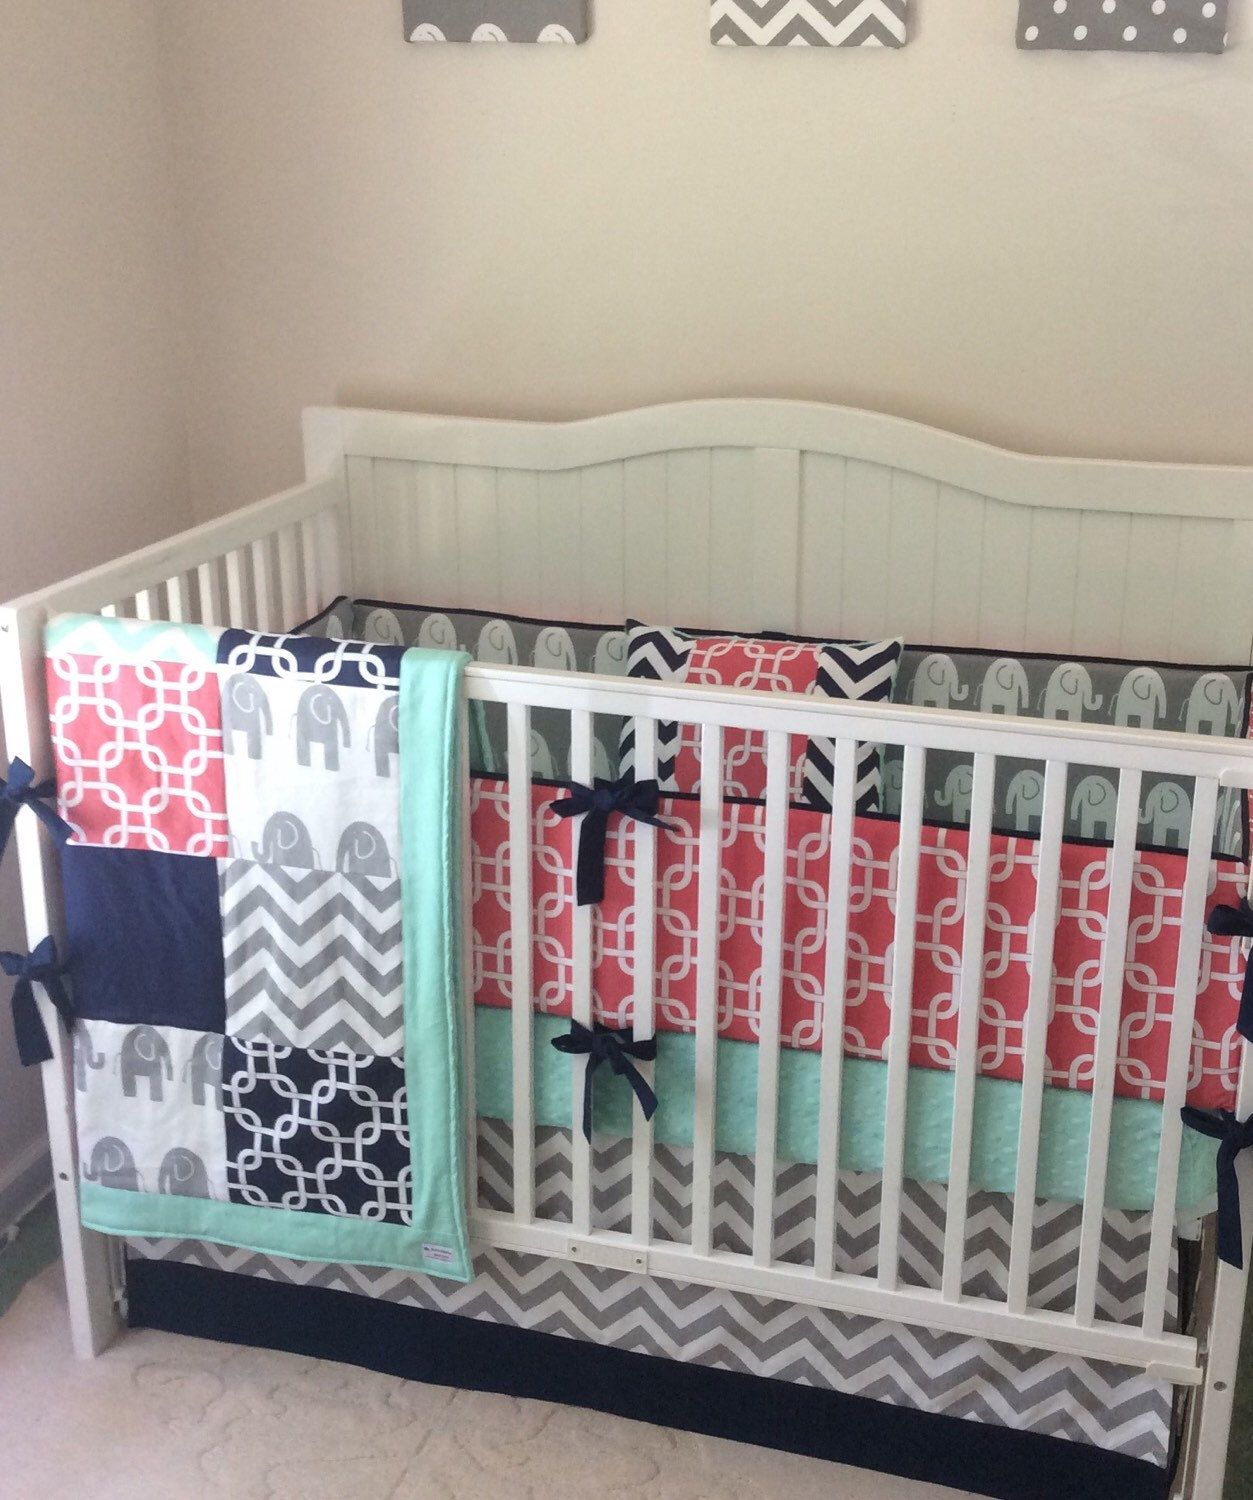 Coral Navy Mint And Gray Crib Bedding With Elephants Girl Crib Bedding Sets Coral Crib Bedding Crib Bedding Girl